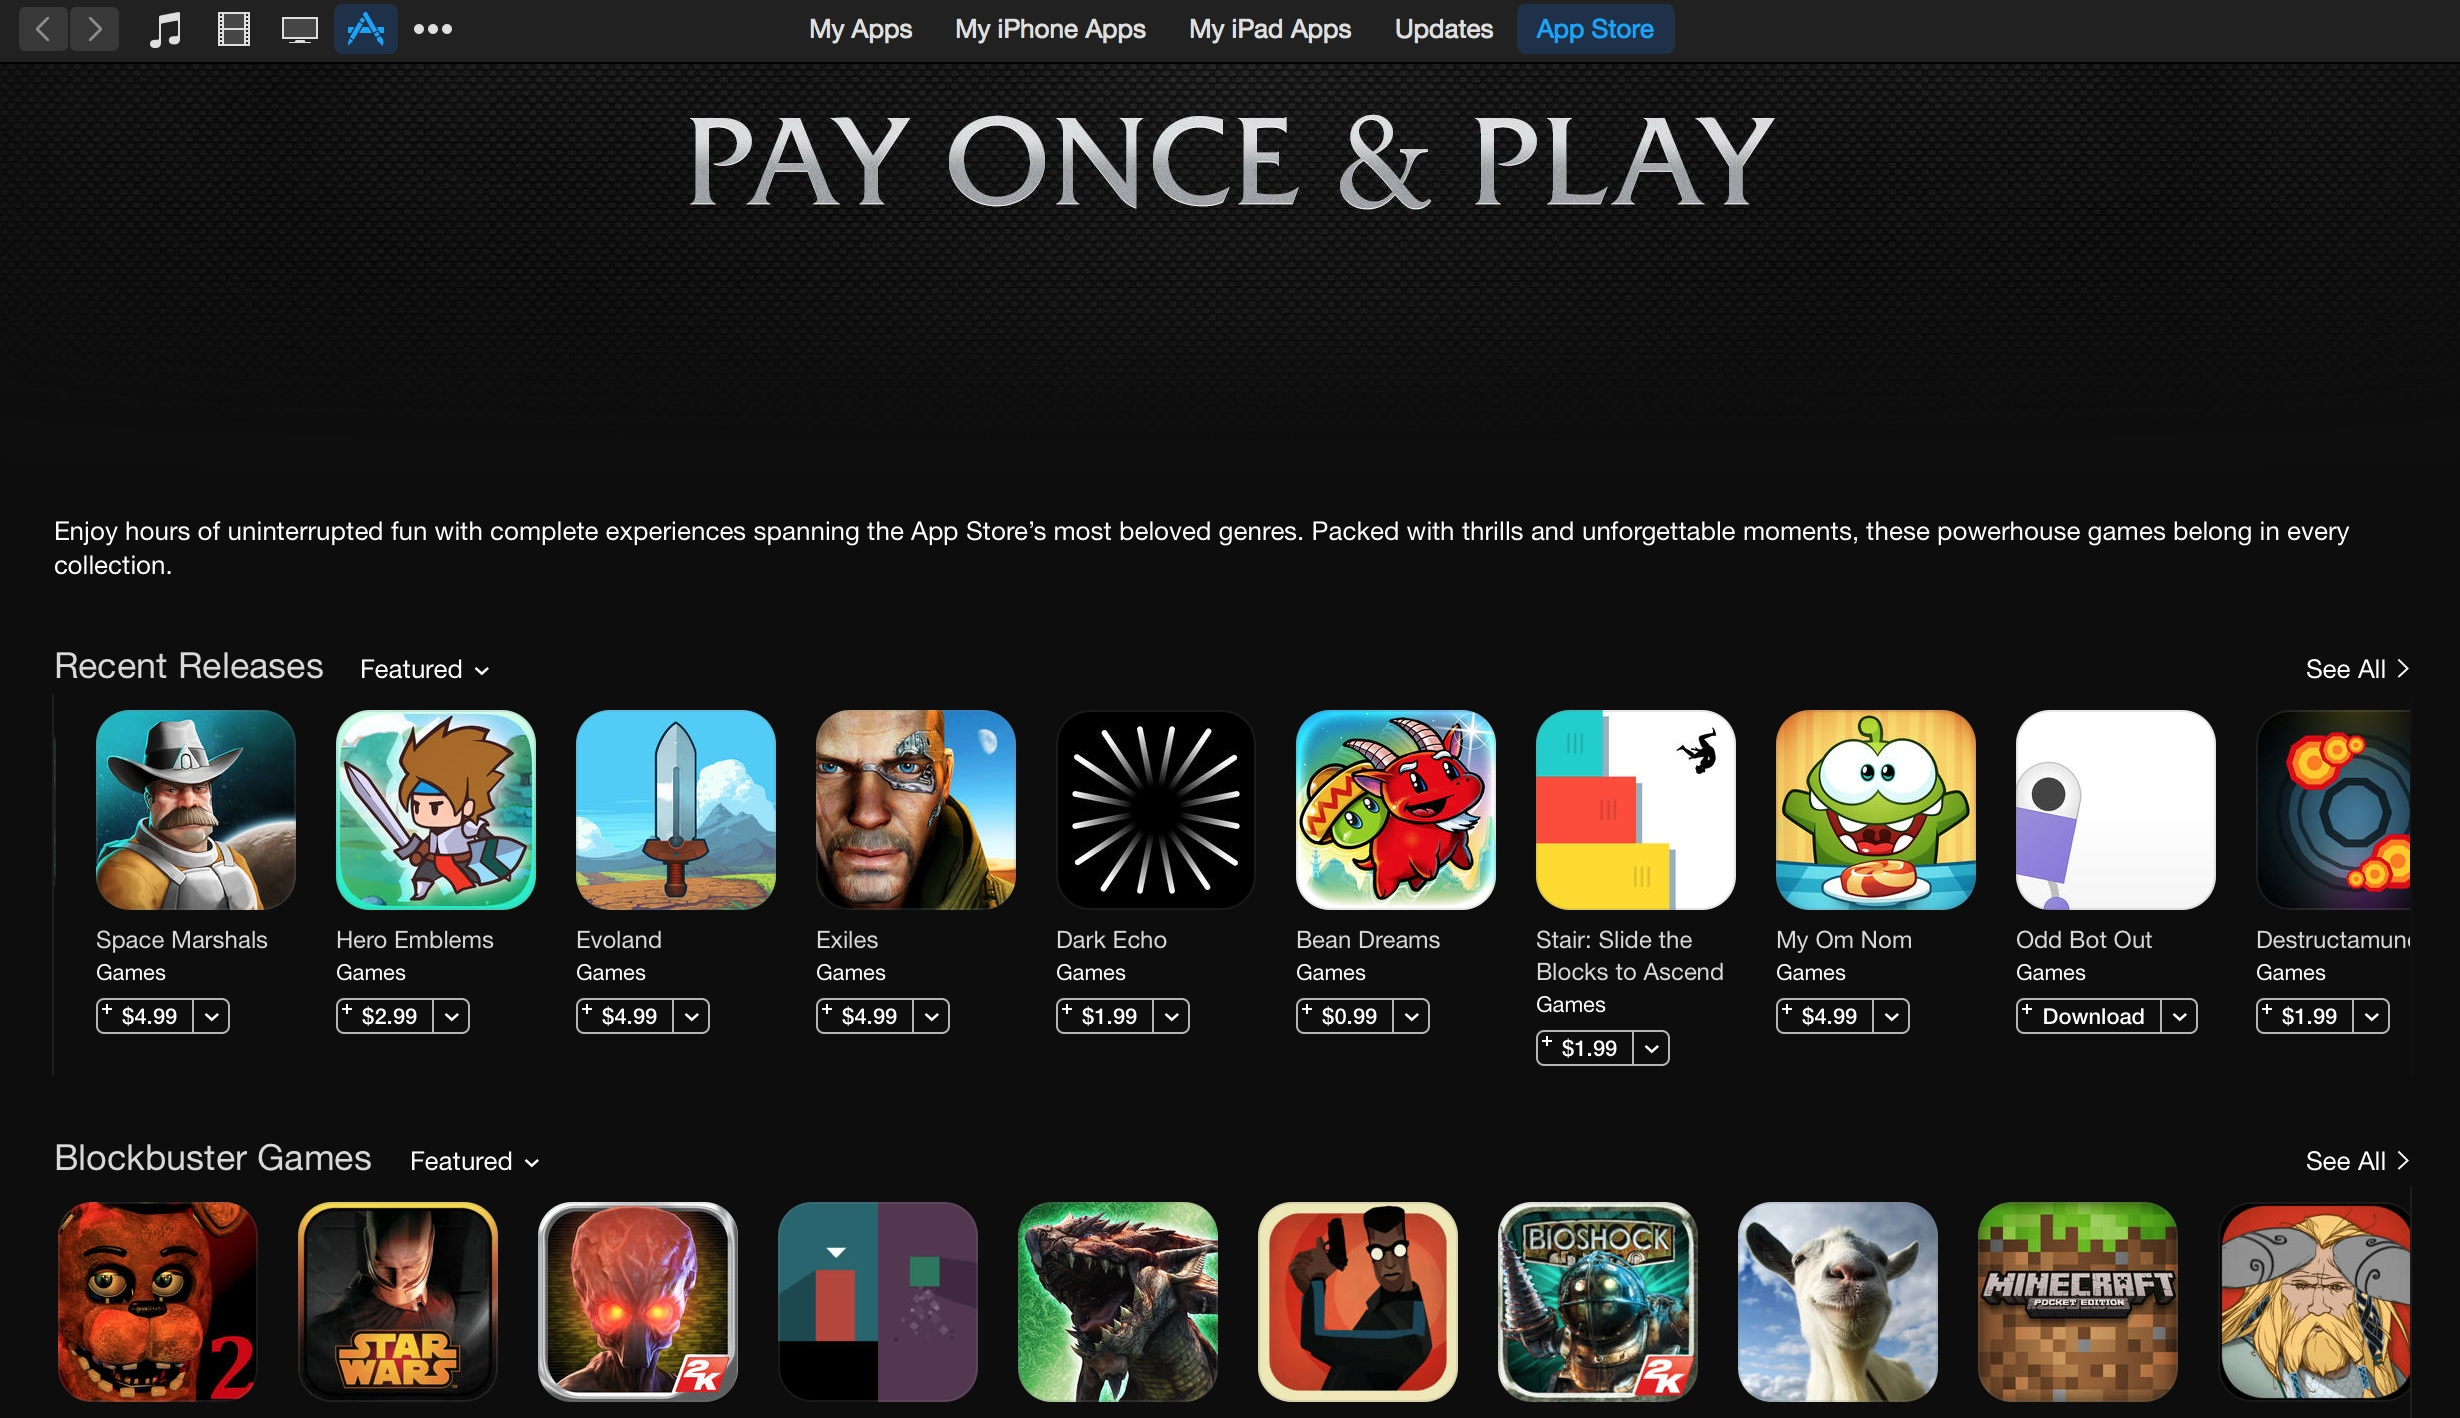 Pay Once and Play: The best games with no in-app purchases. Thank you iTunes!